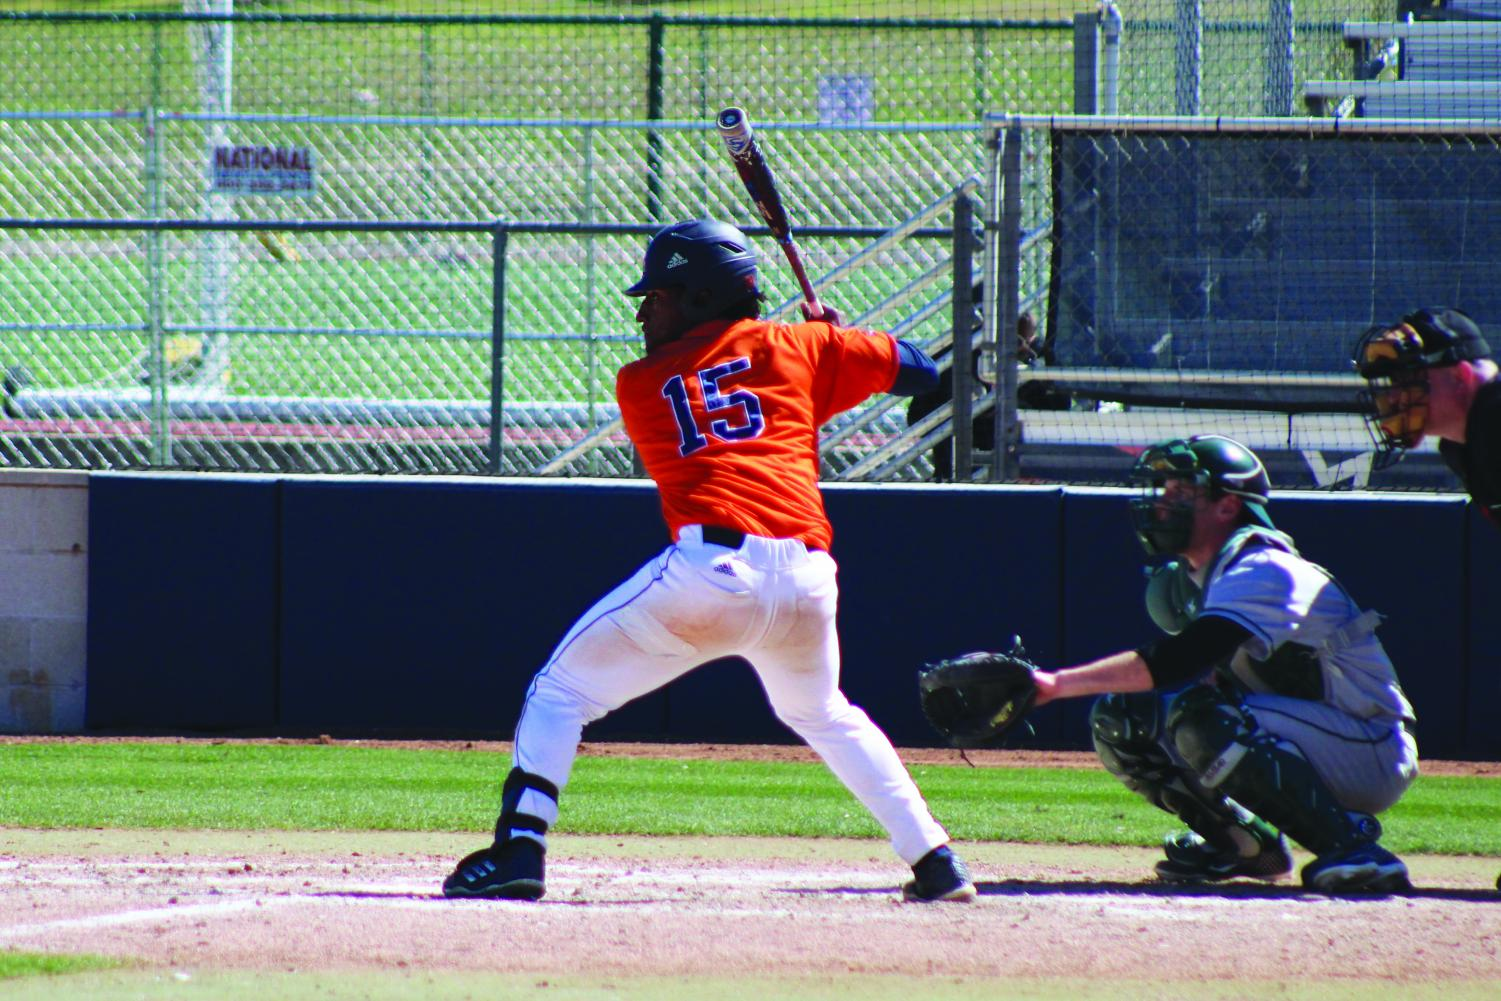 Bryan Sturges bats for the Roadrunners. The 'Runners will open their season on Valentine's Day at the Roadrunner Field.